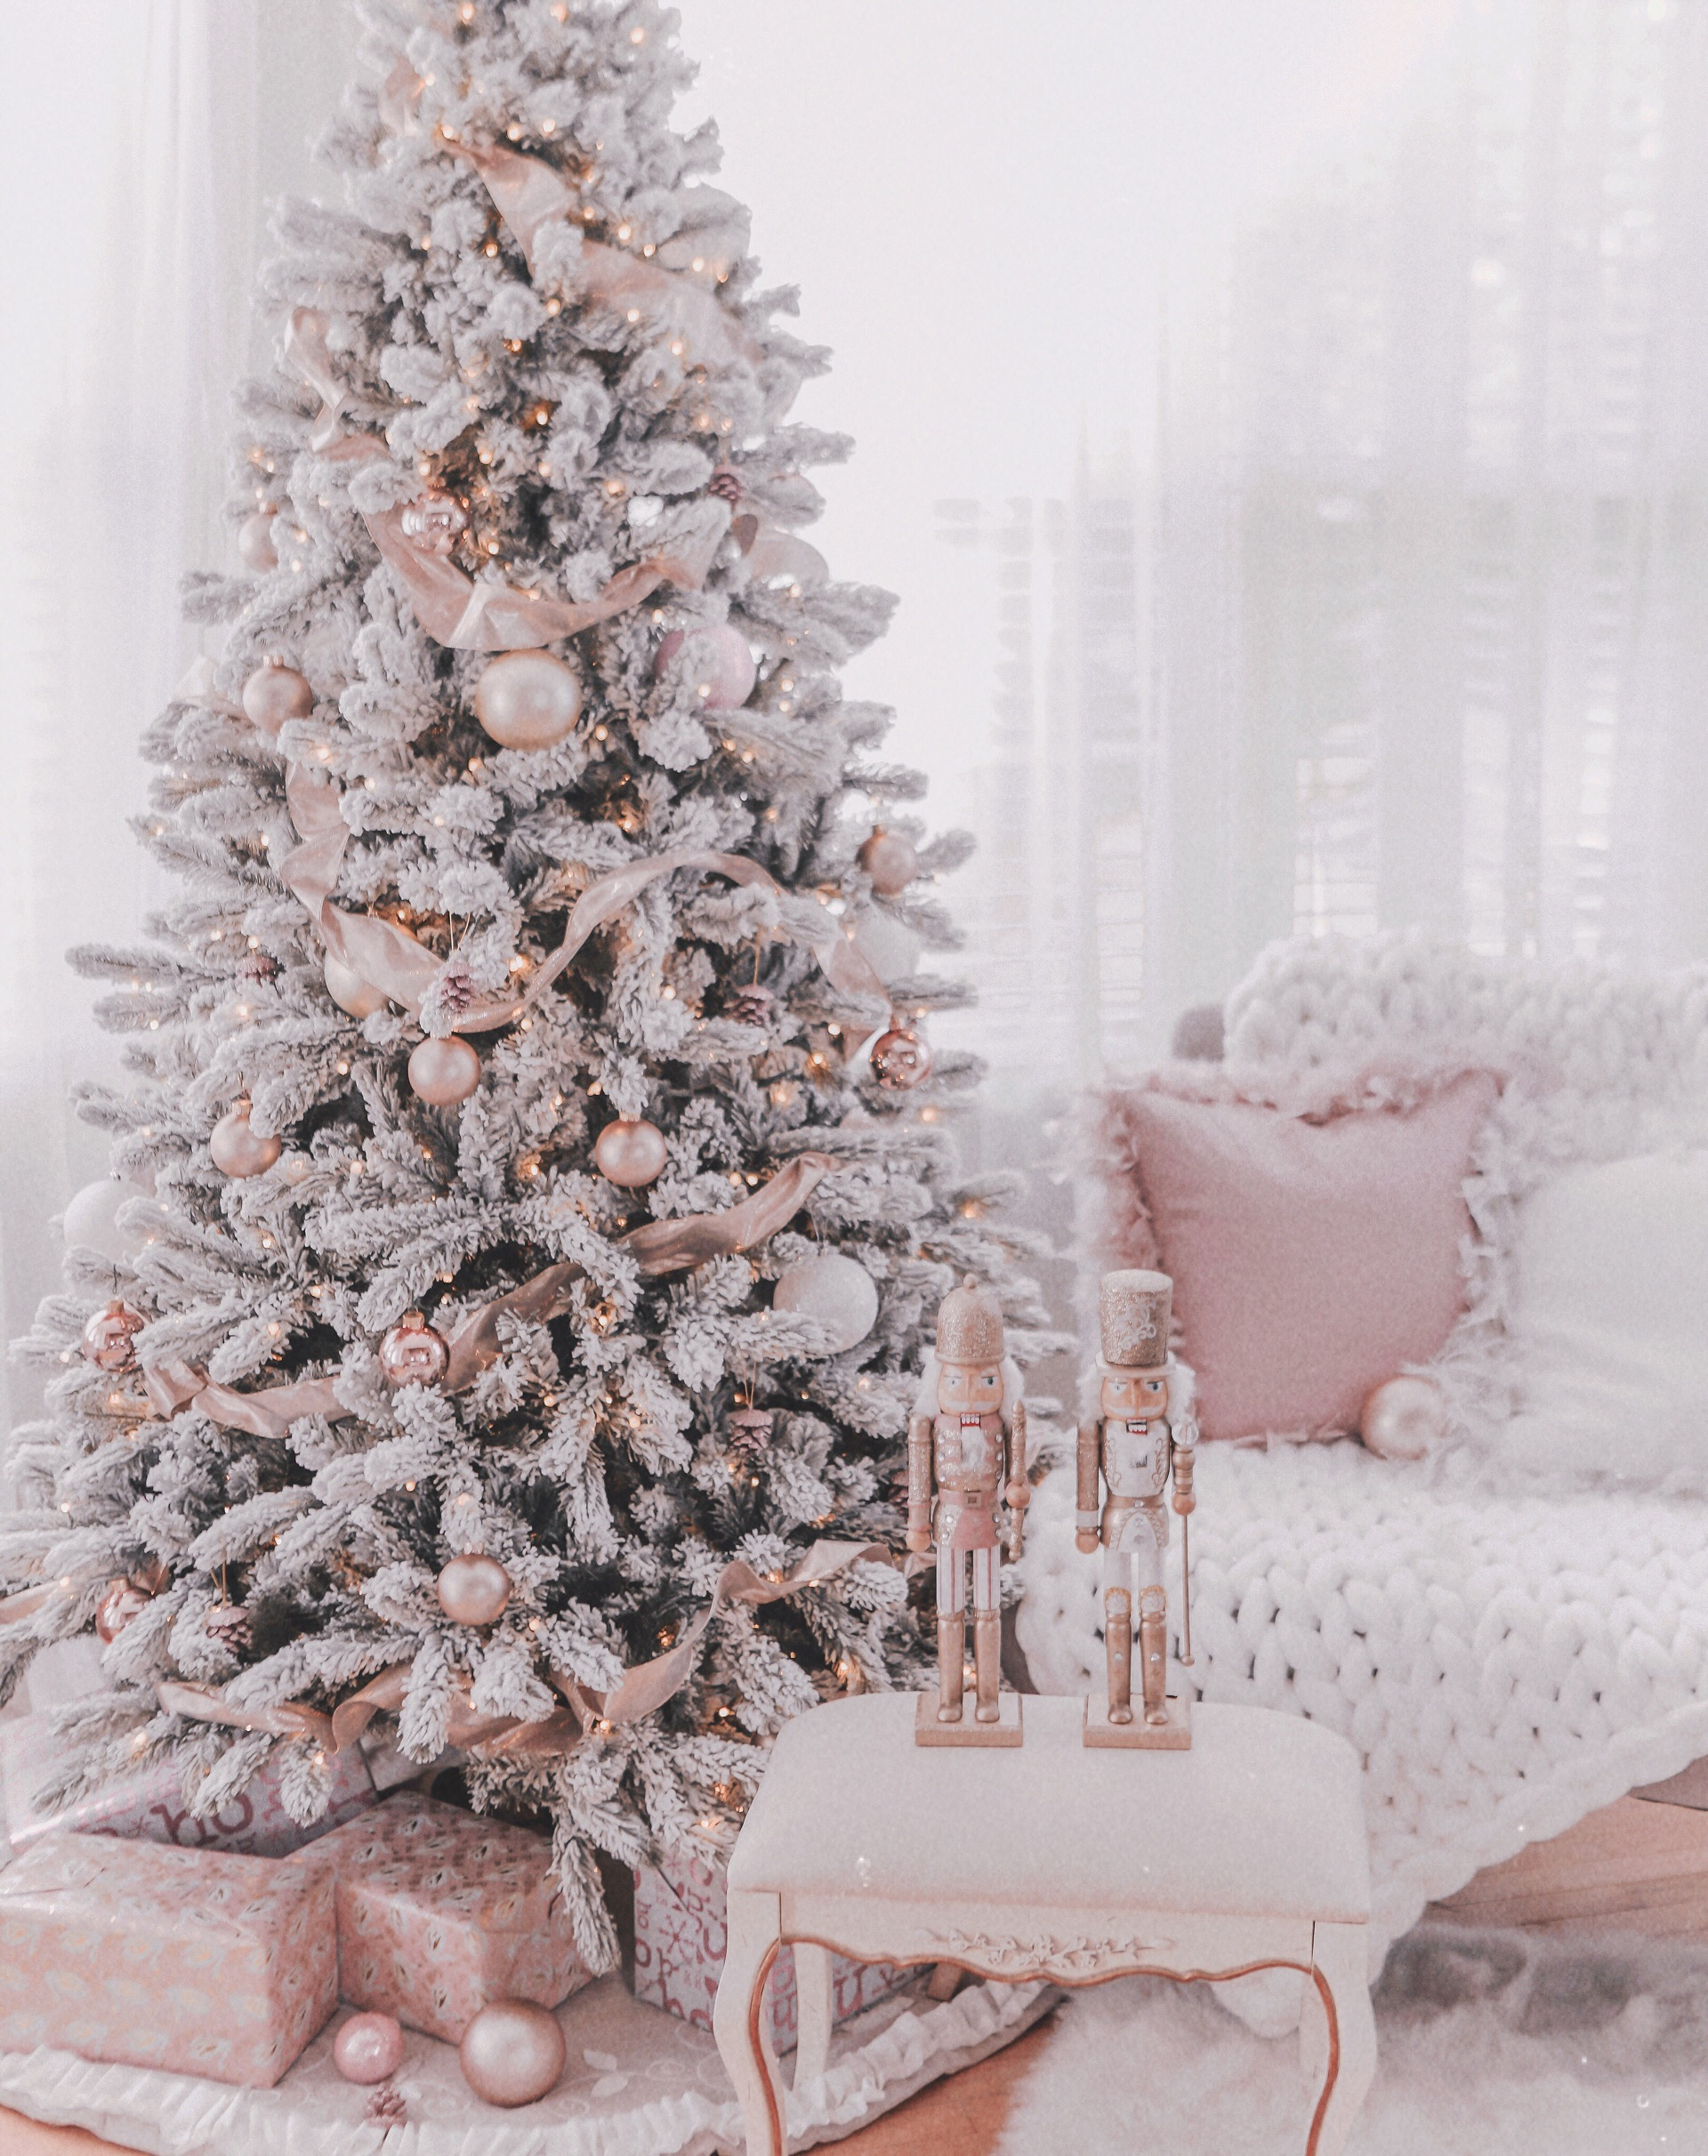 Couture Rose Gold & Blush Christmas Tree Decoration Details Hi Coutures! Here's my holiday shopping details post - as promised! Now I literally just setup the tree a few days ago and we're still making changes and have much more holiday couture decor to add, set up & of course, share with you! But for now here are the details for what I have up so far and for what I've already shared. The Tree Our tree is by King of Christmas and it is the 7.5 foot King flocked pre-lit Christmas tree. It's so fluffy and beautiful and I can promise you that it is worth every cent. I can't even tell you how many comments we've gotten in person already as to how gorgeous it is and it's definitely converting faux-tree haters! We ordered ours in October after hearing that they sell out for good right about now. So loves, if you want it THIS year, you must order now! Rose Gold Ornaments A lot of questions I've received thus far have been where are the ornaments from? Well loves they were super cheap, I'm talking $5 a pack cheap and I think will sell out rather quickly. We went with a mix of rose gold frosted, rose gold glitter and than jumbo rose gold and gold ornaments which I've linked all in this post. You can buy online & have them shipped or pick them up in the store. I've also added these darling little Eiffel Tower glitter ornaments to the tree and my goodness are they lovely! Ribbon My desire for the tree this year was to have a rose gold & blush look as much as possible and to achieve that we looked to ribbon. I've linked some of the different ribbons that we added to the tree In this post. However, I didn't see one style that we used a lot of on the Michaels.com website. It's rose gold and very shimmery. The Nutcrackers These babies are from Michaels as well and wow did they sell out FAST! I just saw them in stock online, a few days ago but now they're gone. I also picked up the last 2 from my local store last weekend. There is a chance they will be restocked and available at yo